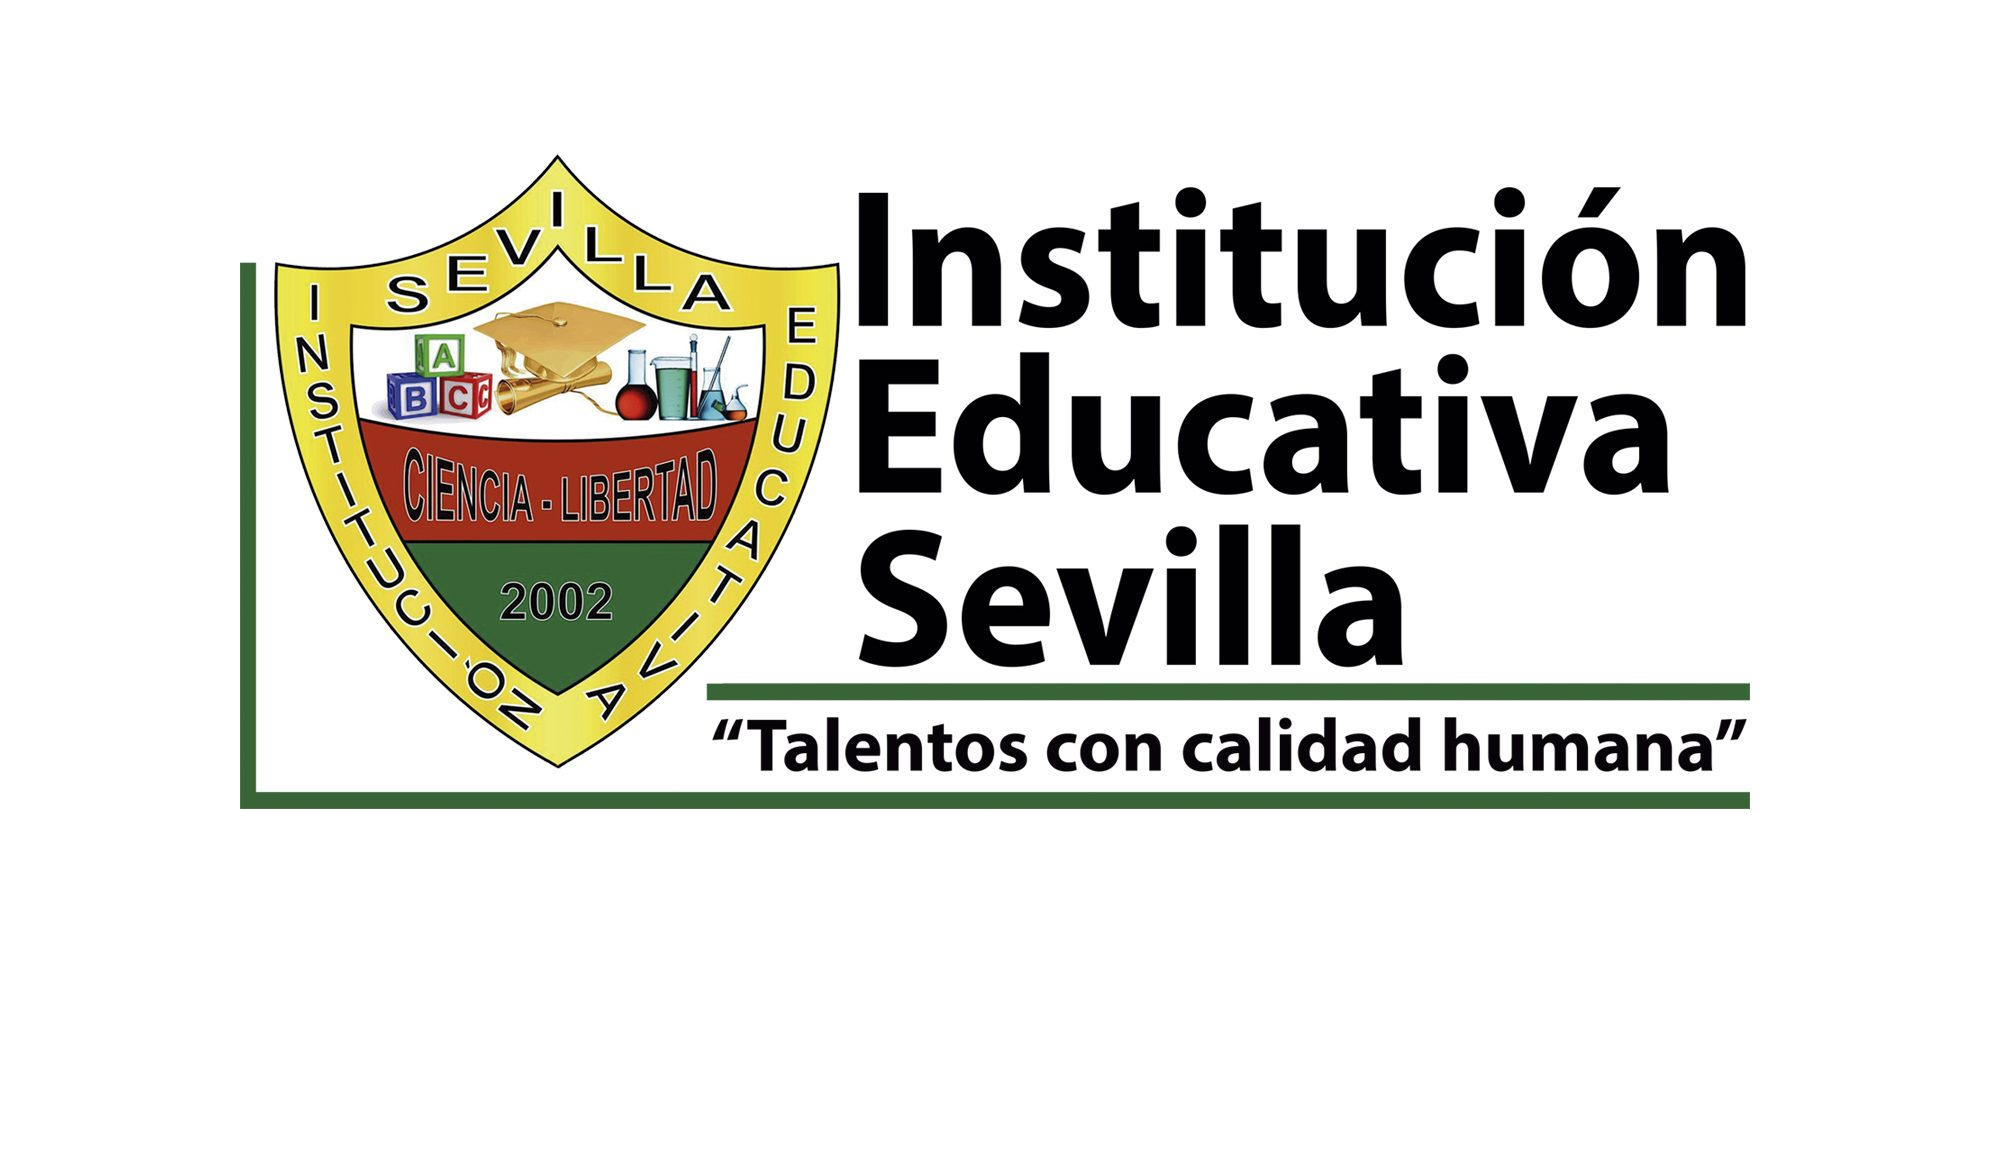 Institución Educativa Sevilla